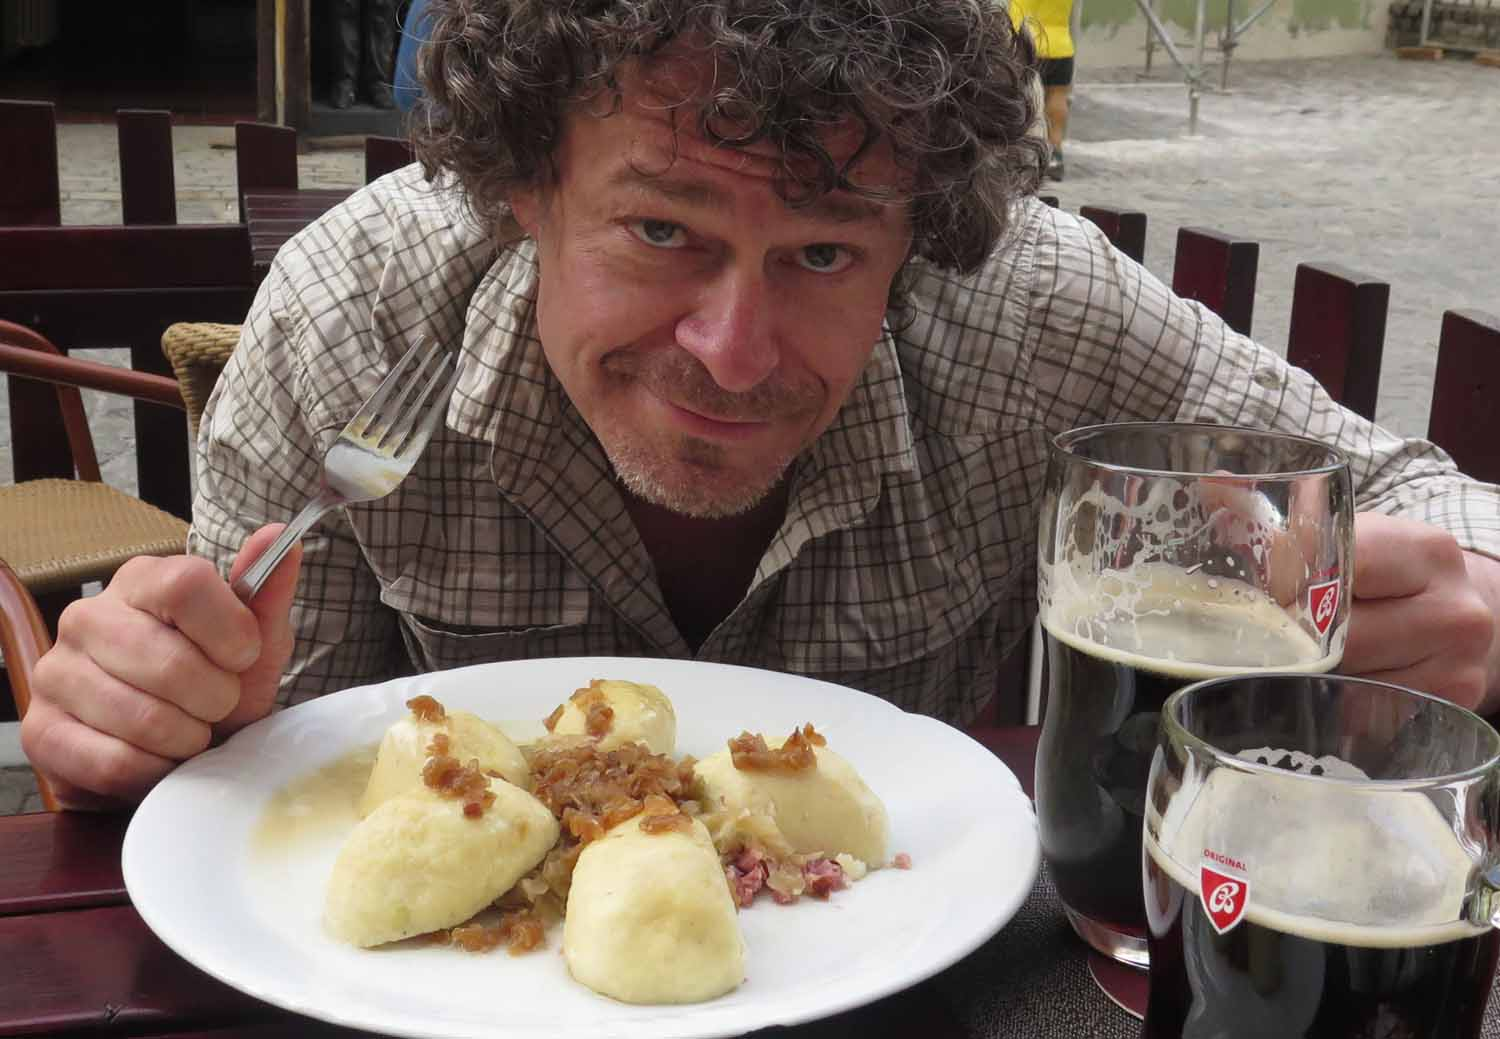 czech-republic-czesky-krumlov-food-and-drink-dumplings